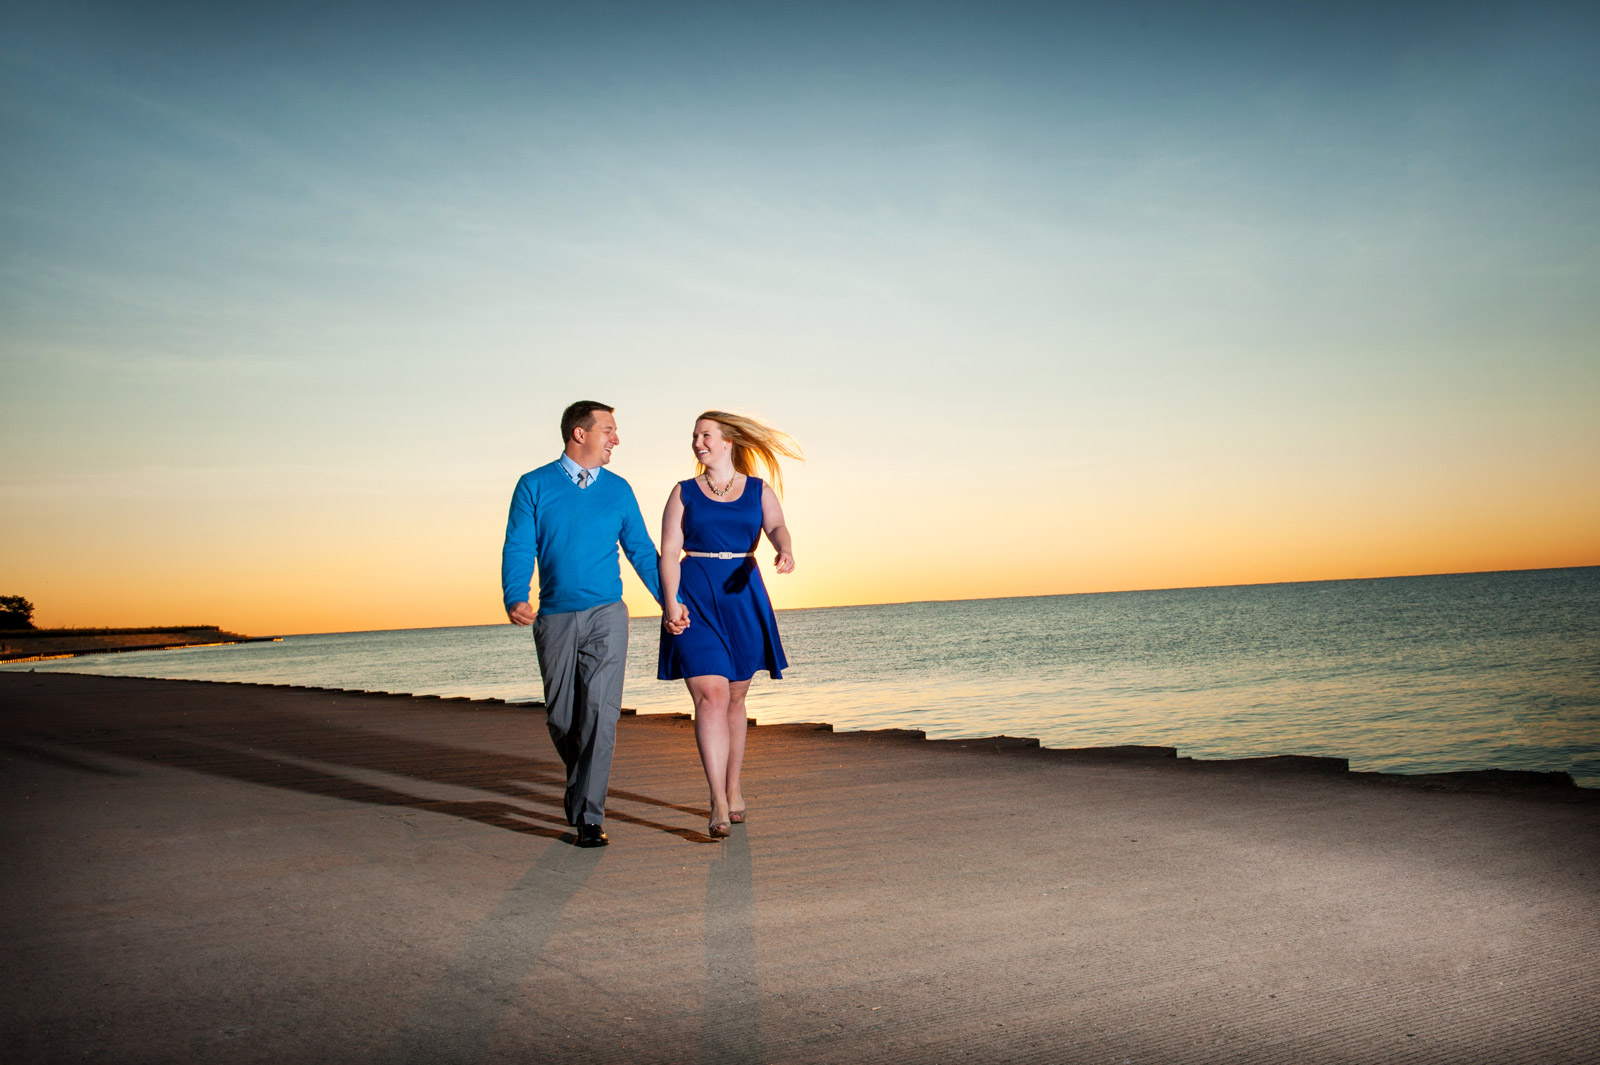 Chicago sunrise engagement session on Lake Michigan in the Summer